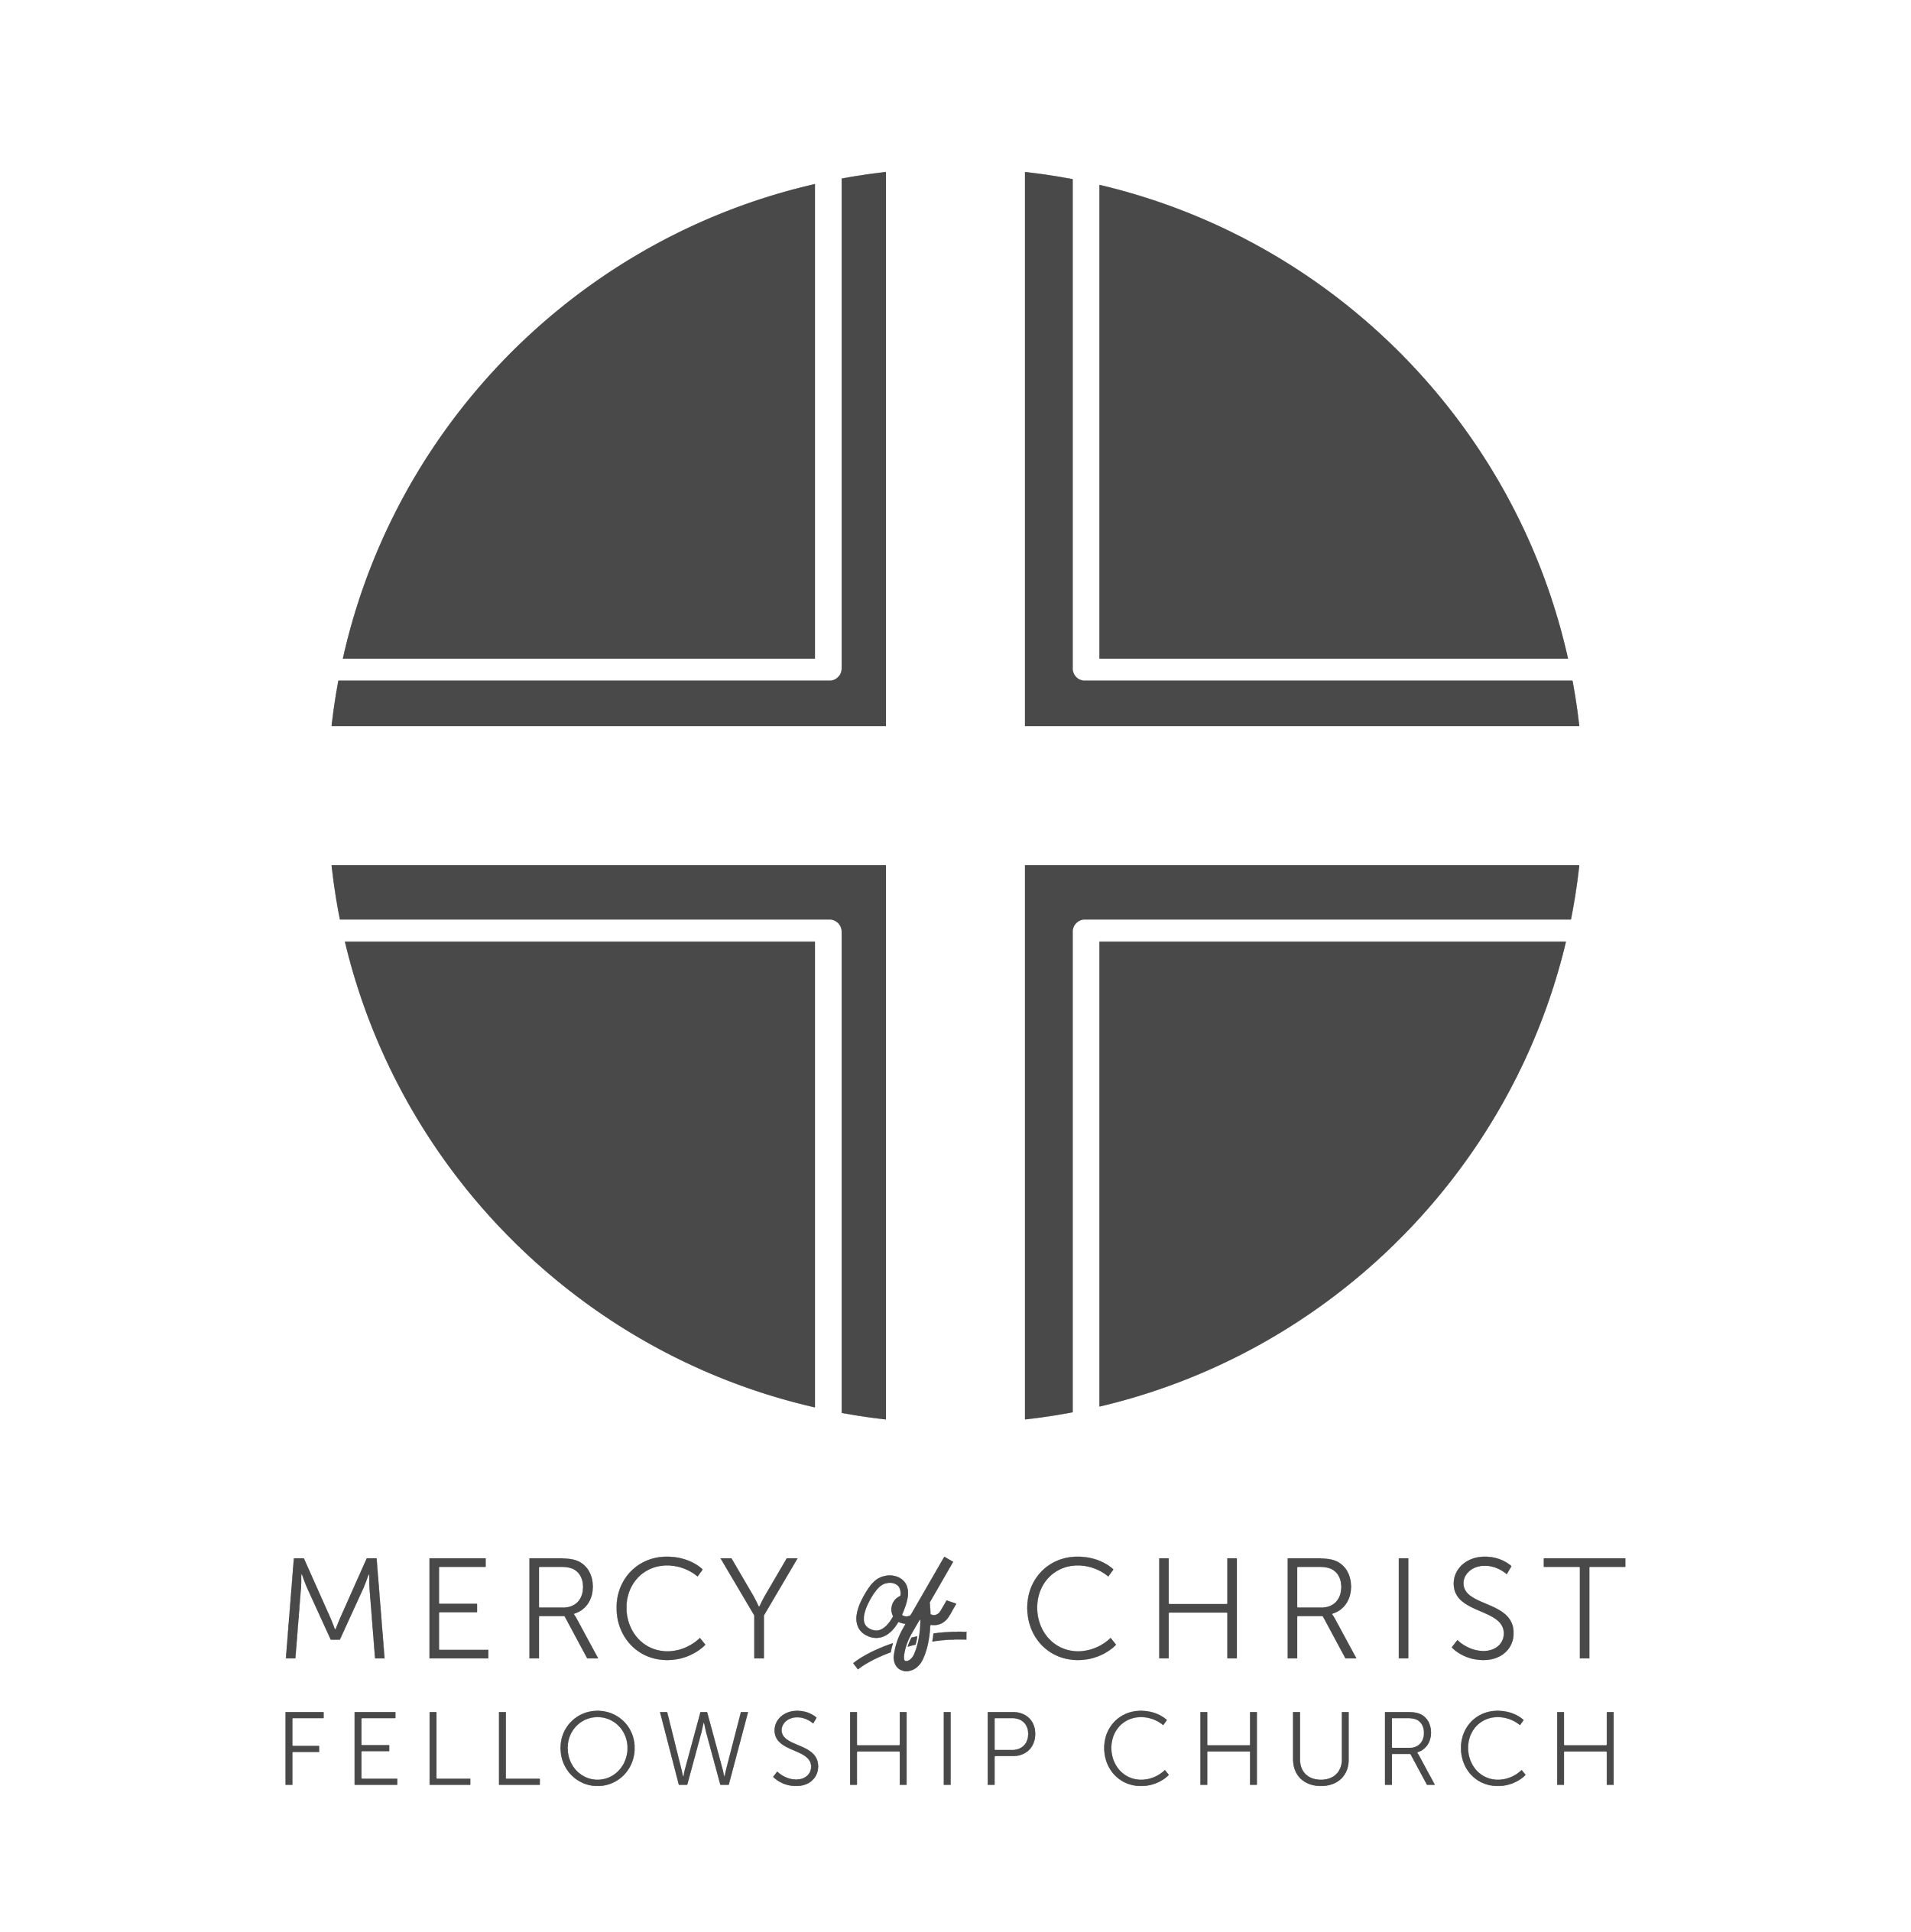 MERCY LOGO-stacked-01.png